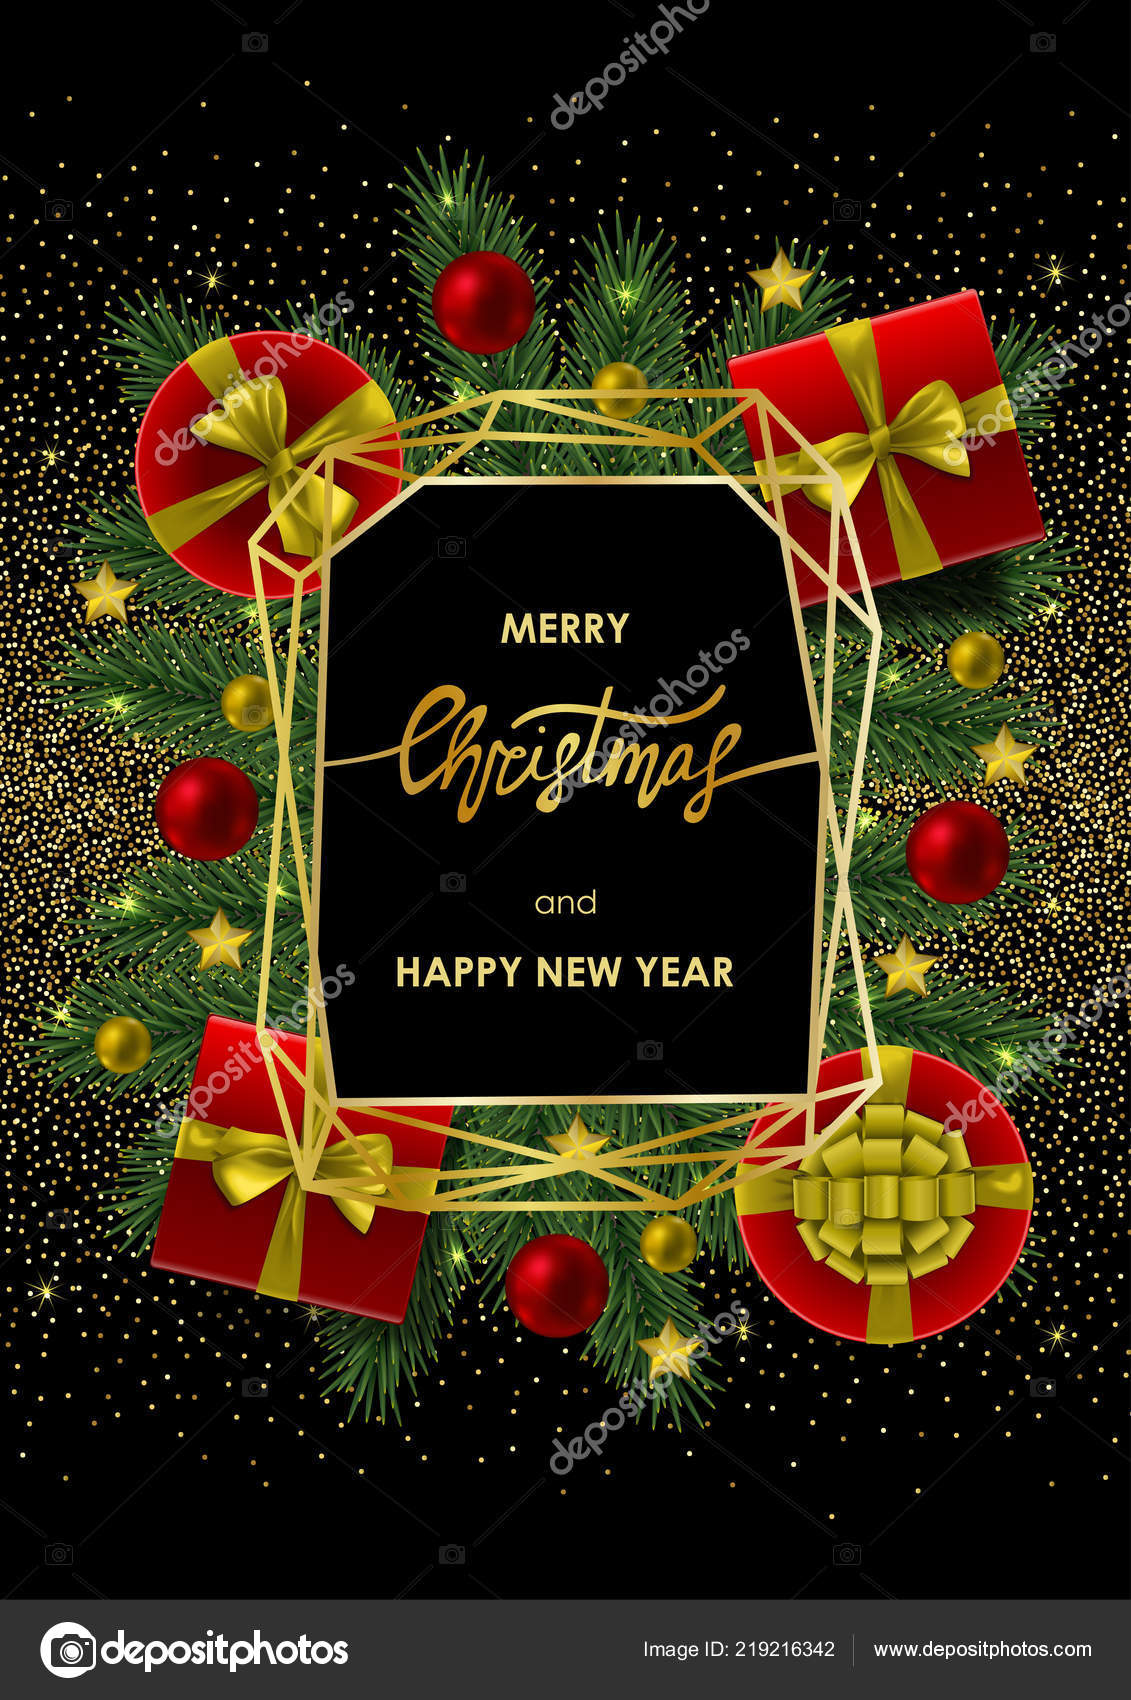 merry christmas and happy new year invitation card with gold geometric frame on black background a4 template with fir tree template for greeting winter